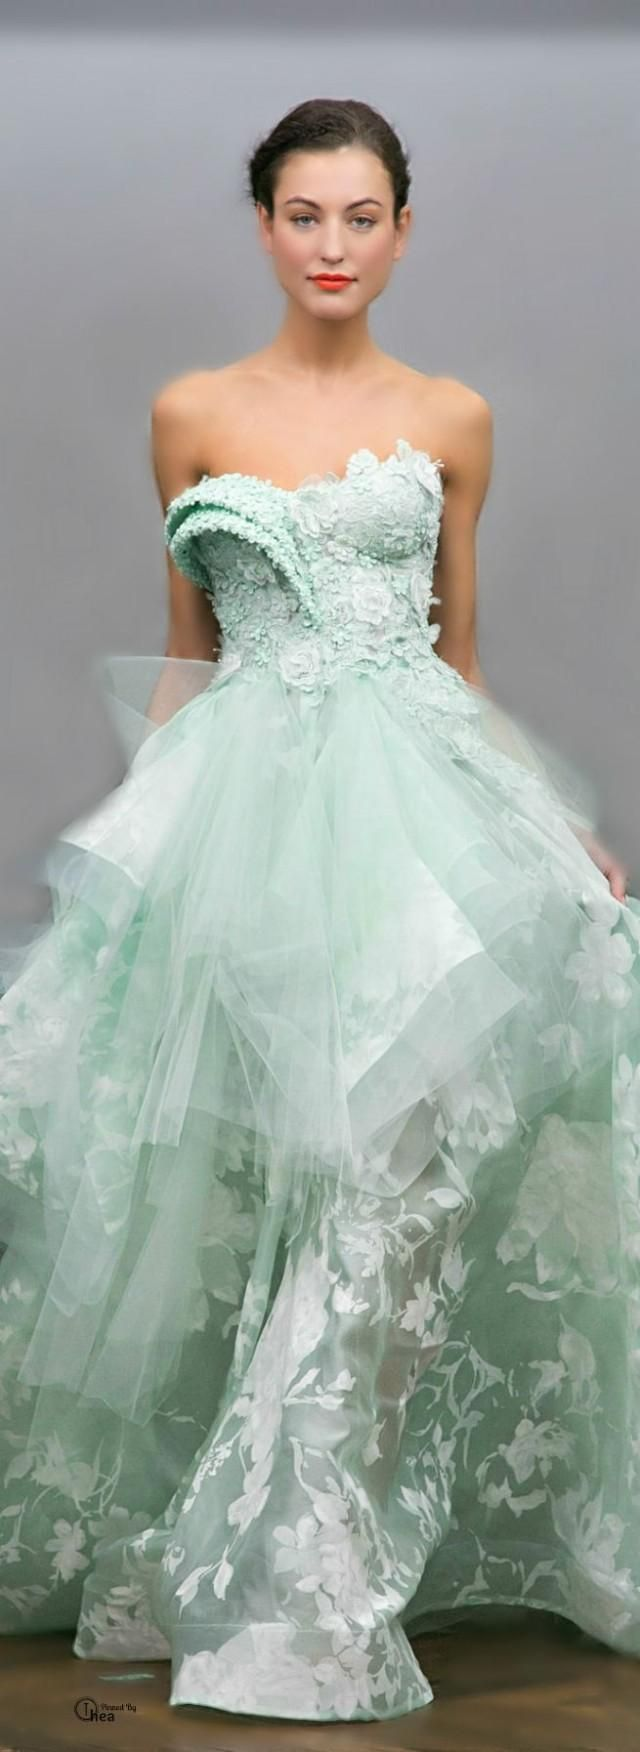 35 best Light Green Wedding! dresses, cakes, bouquets, shoes ...